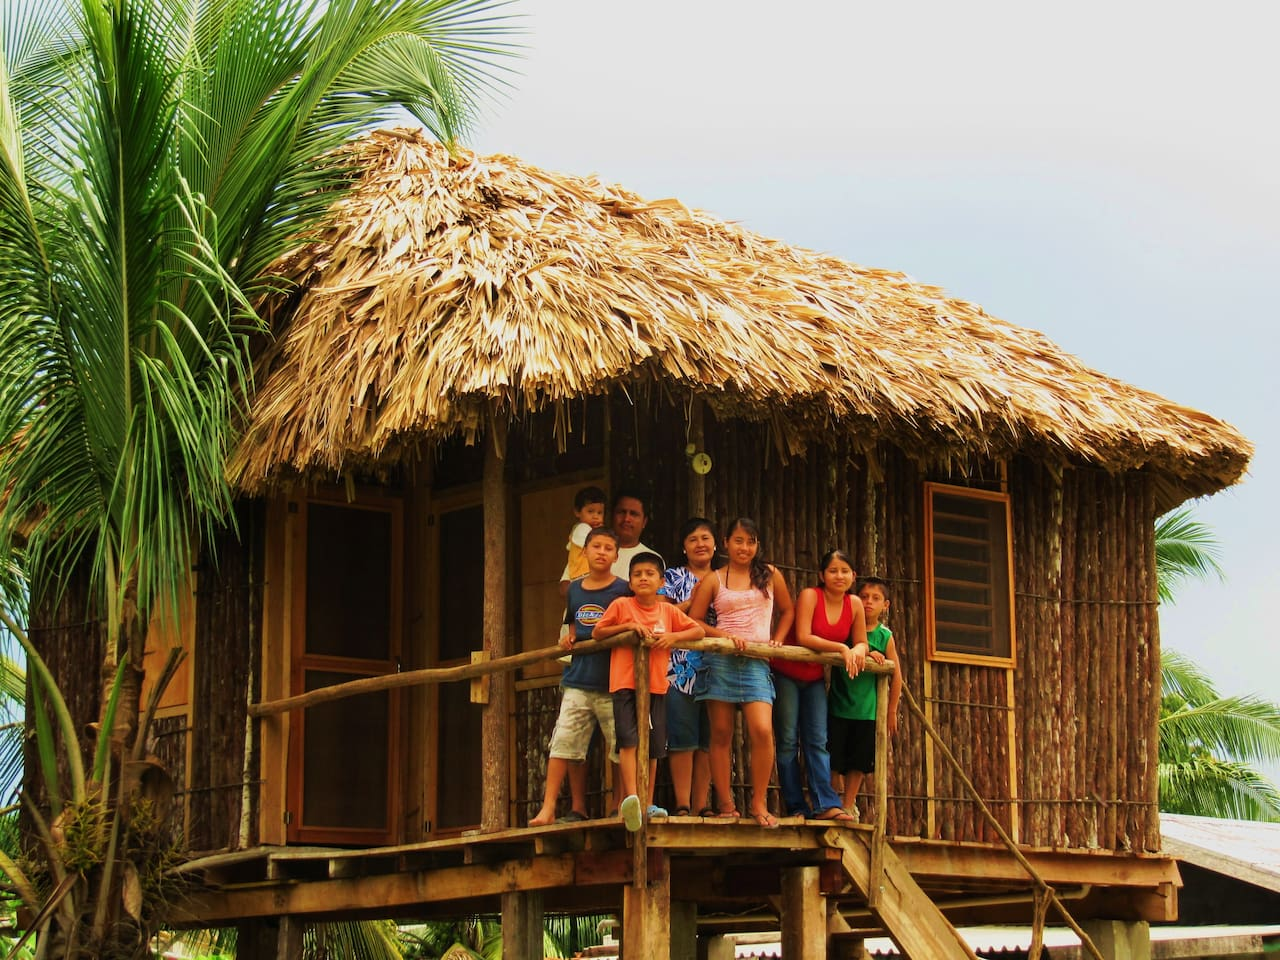 Cabana for rent with host family